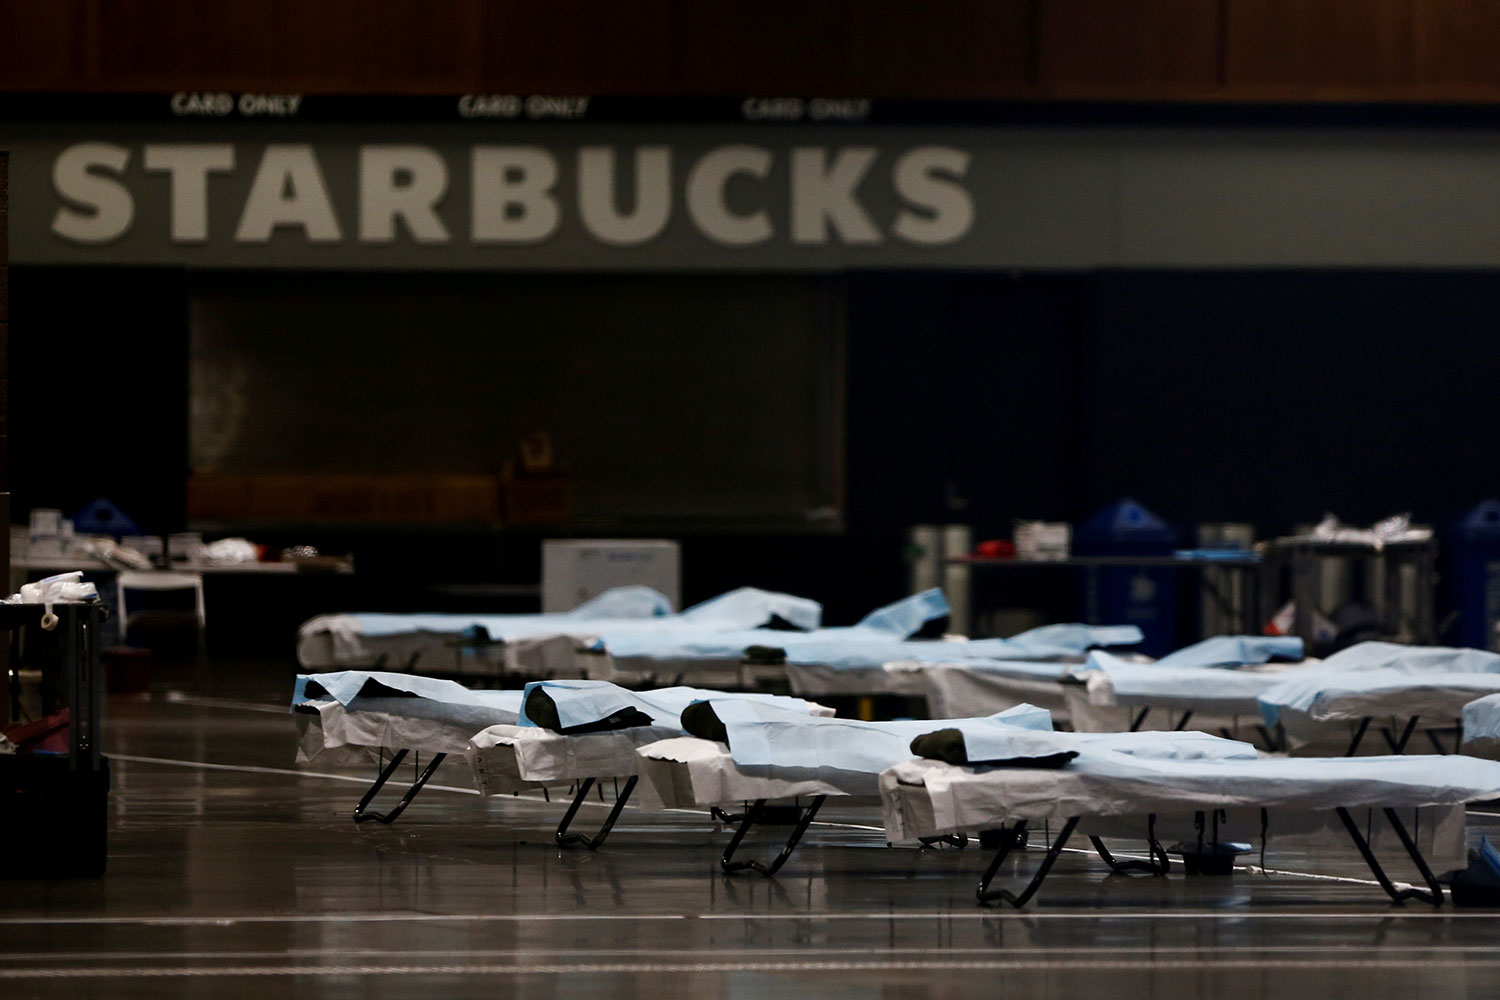 The photo shows a large number of beds lined up in a large open space with a Starbucks sign in the background.